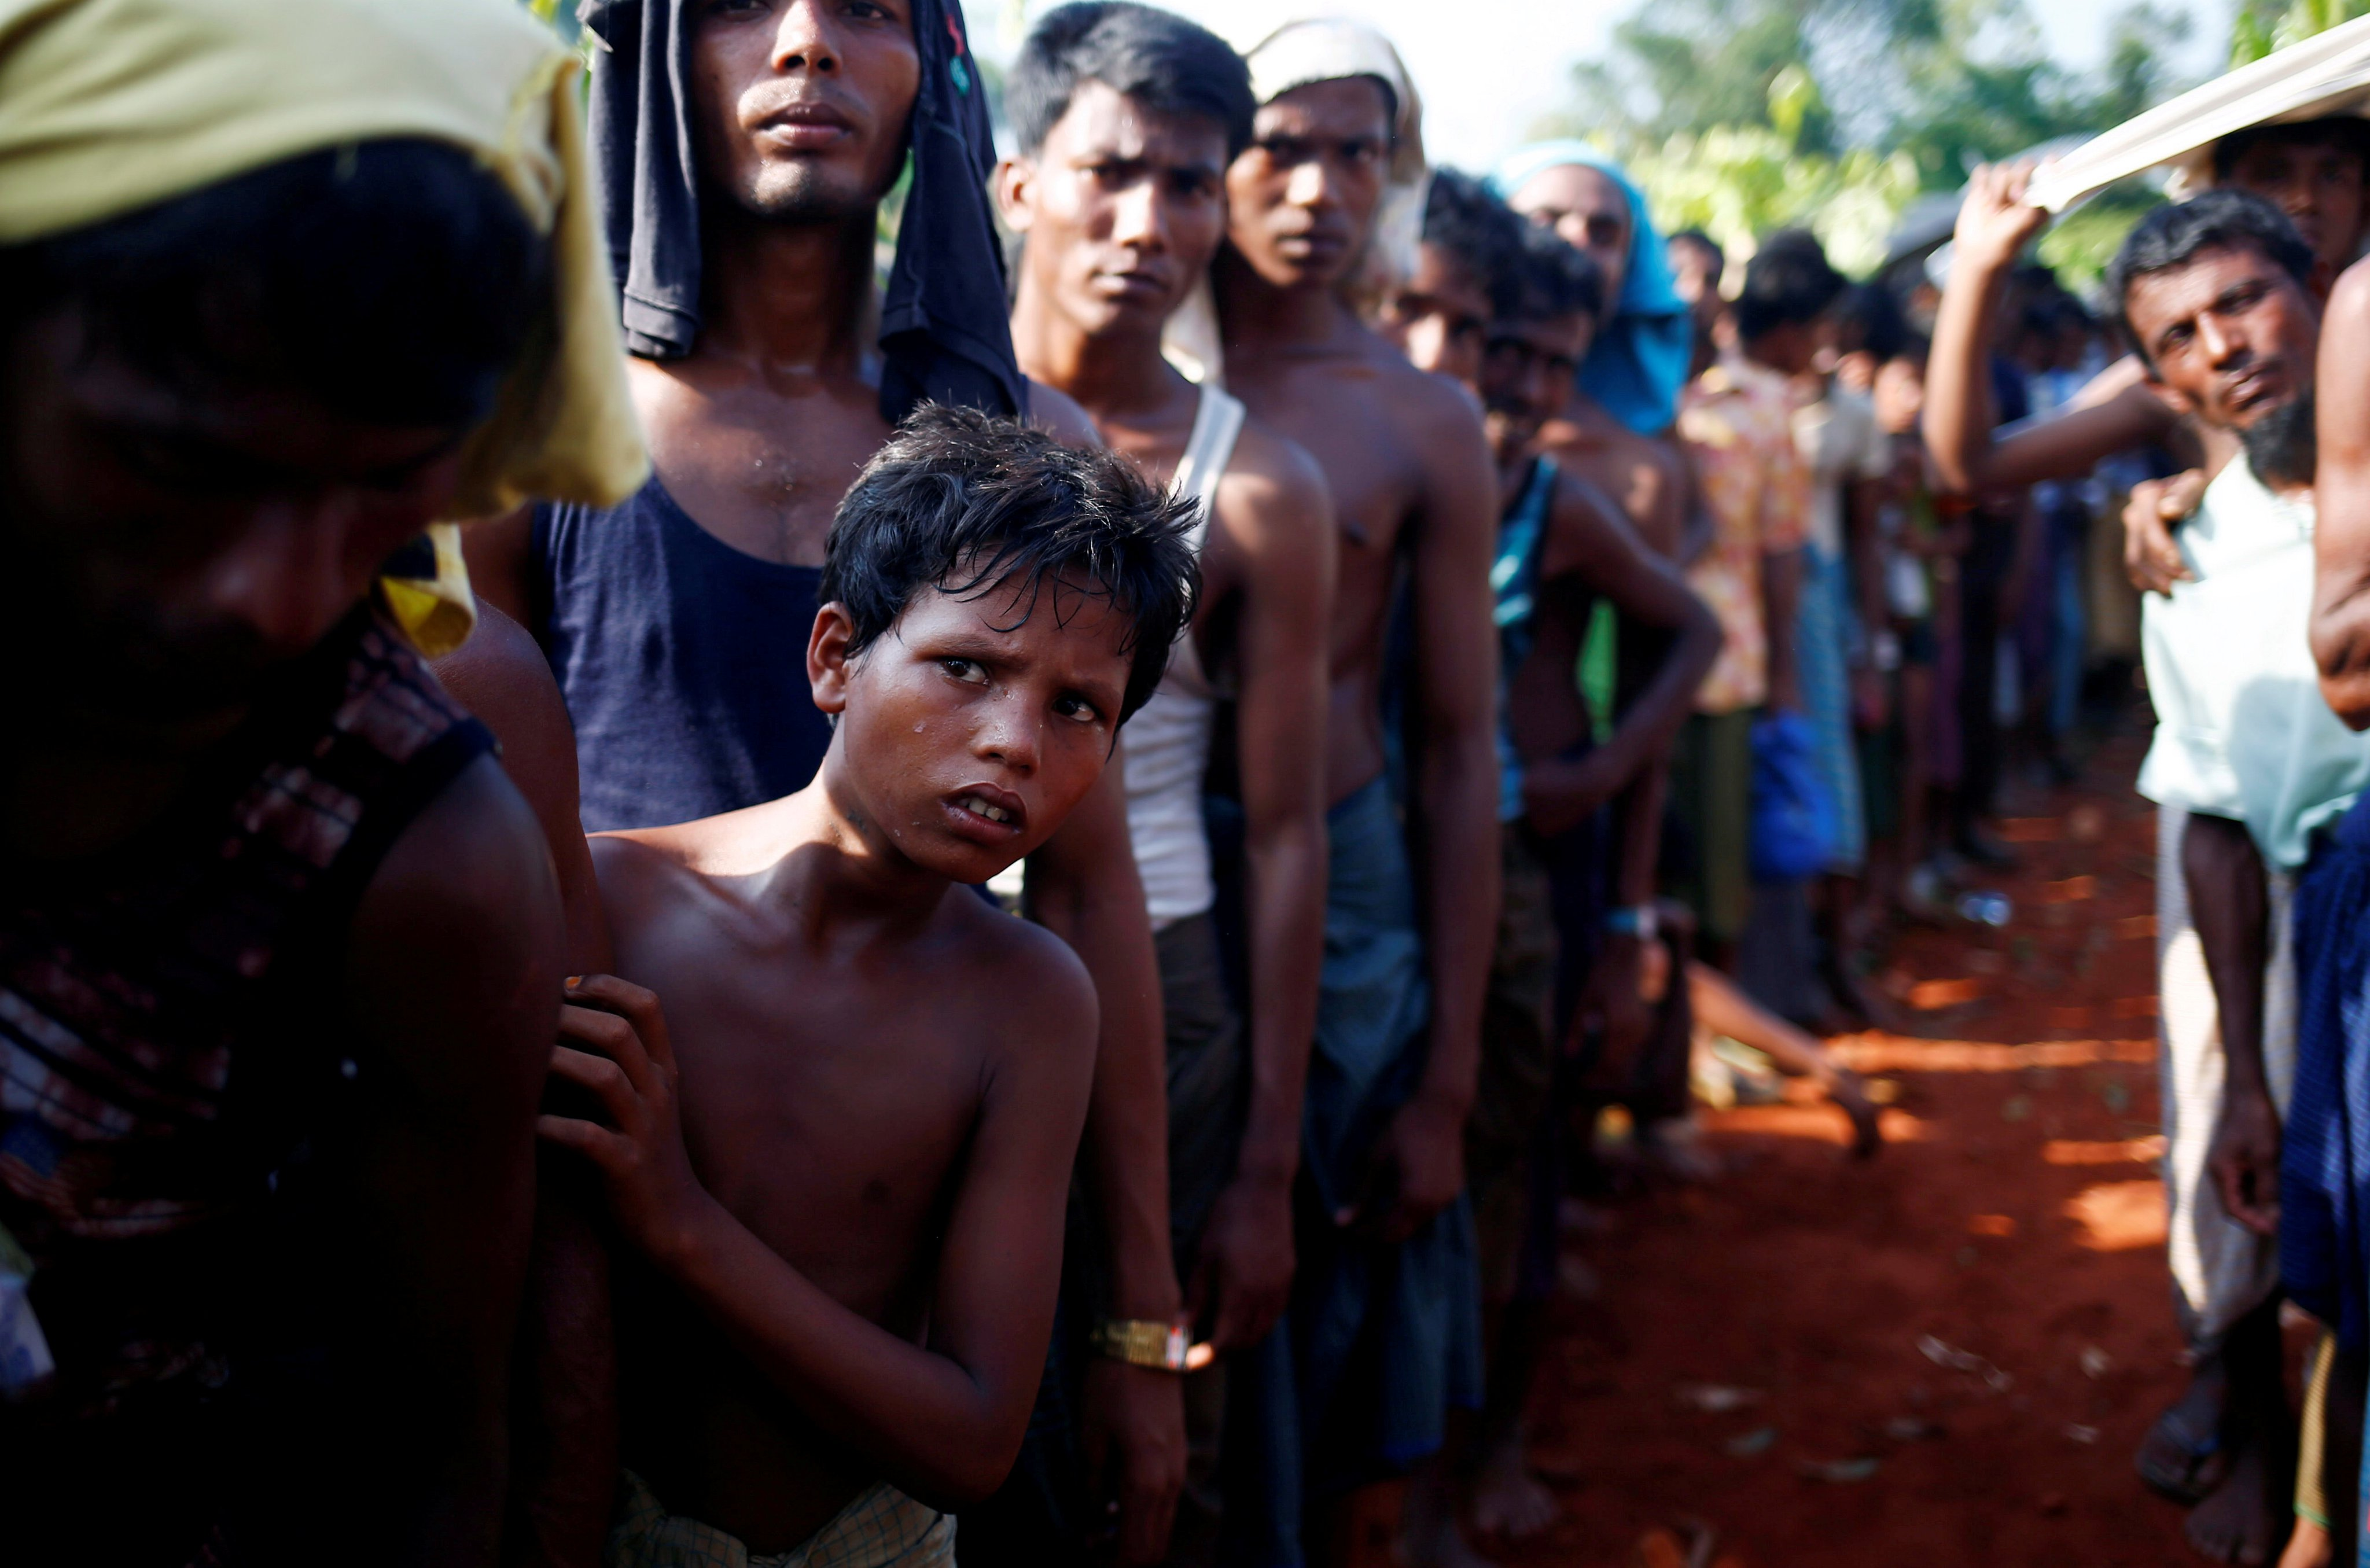 myanmar a nation in crisis The us calls on myanmar to punish soldiers responsible for violence, but stopped short of re-imposing sanctions china and russia back aung san suu kyi's government e-mail this to a friend rohingya refugee crisis is a human rights nightmare, says un chief.